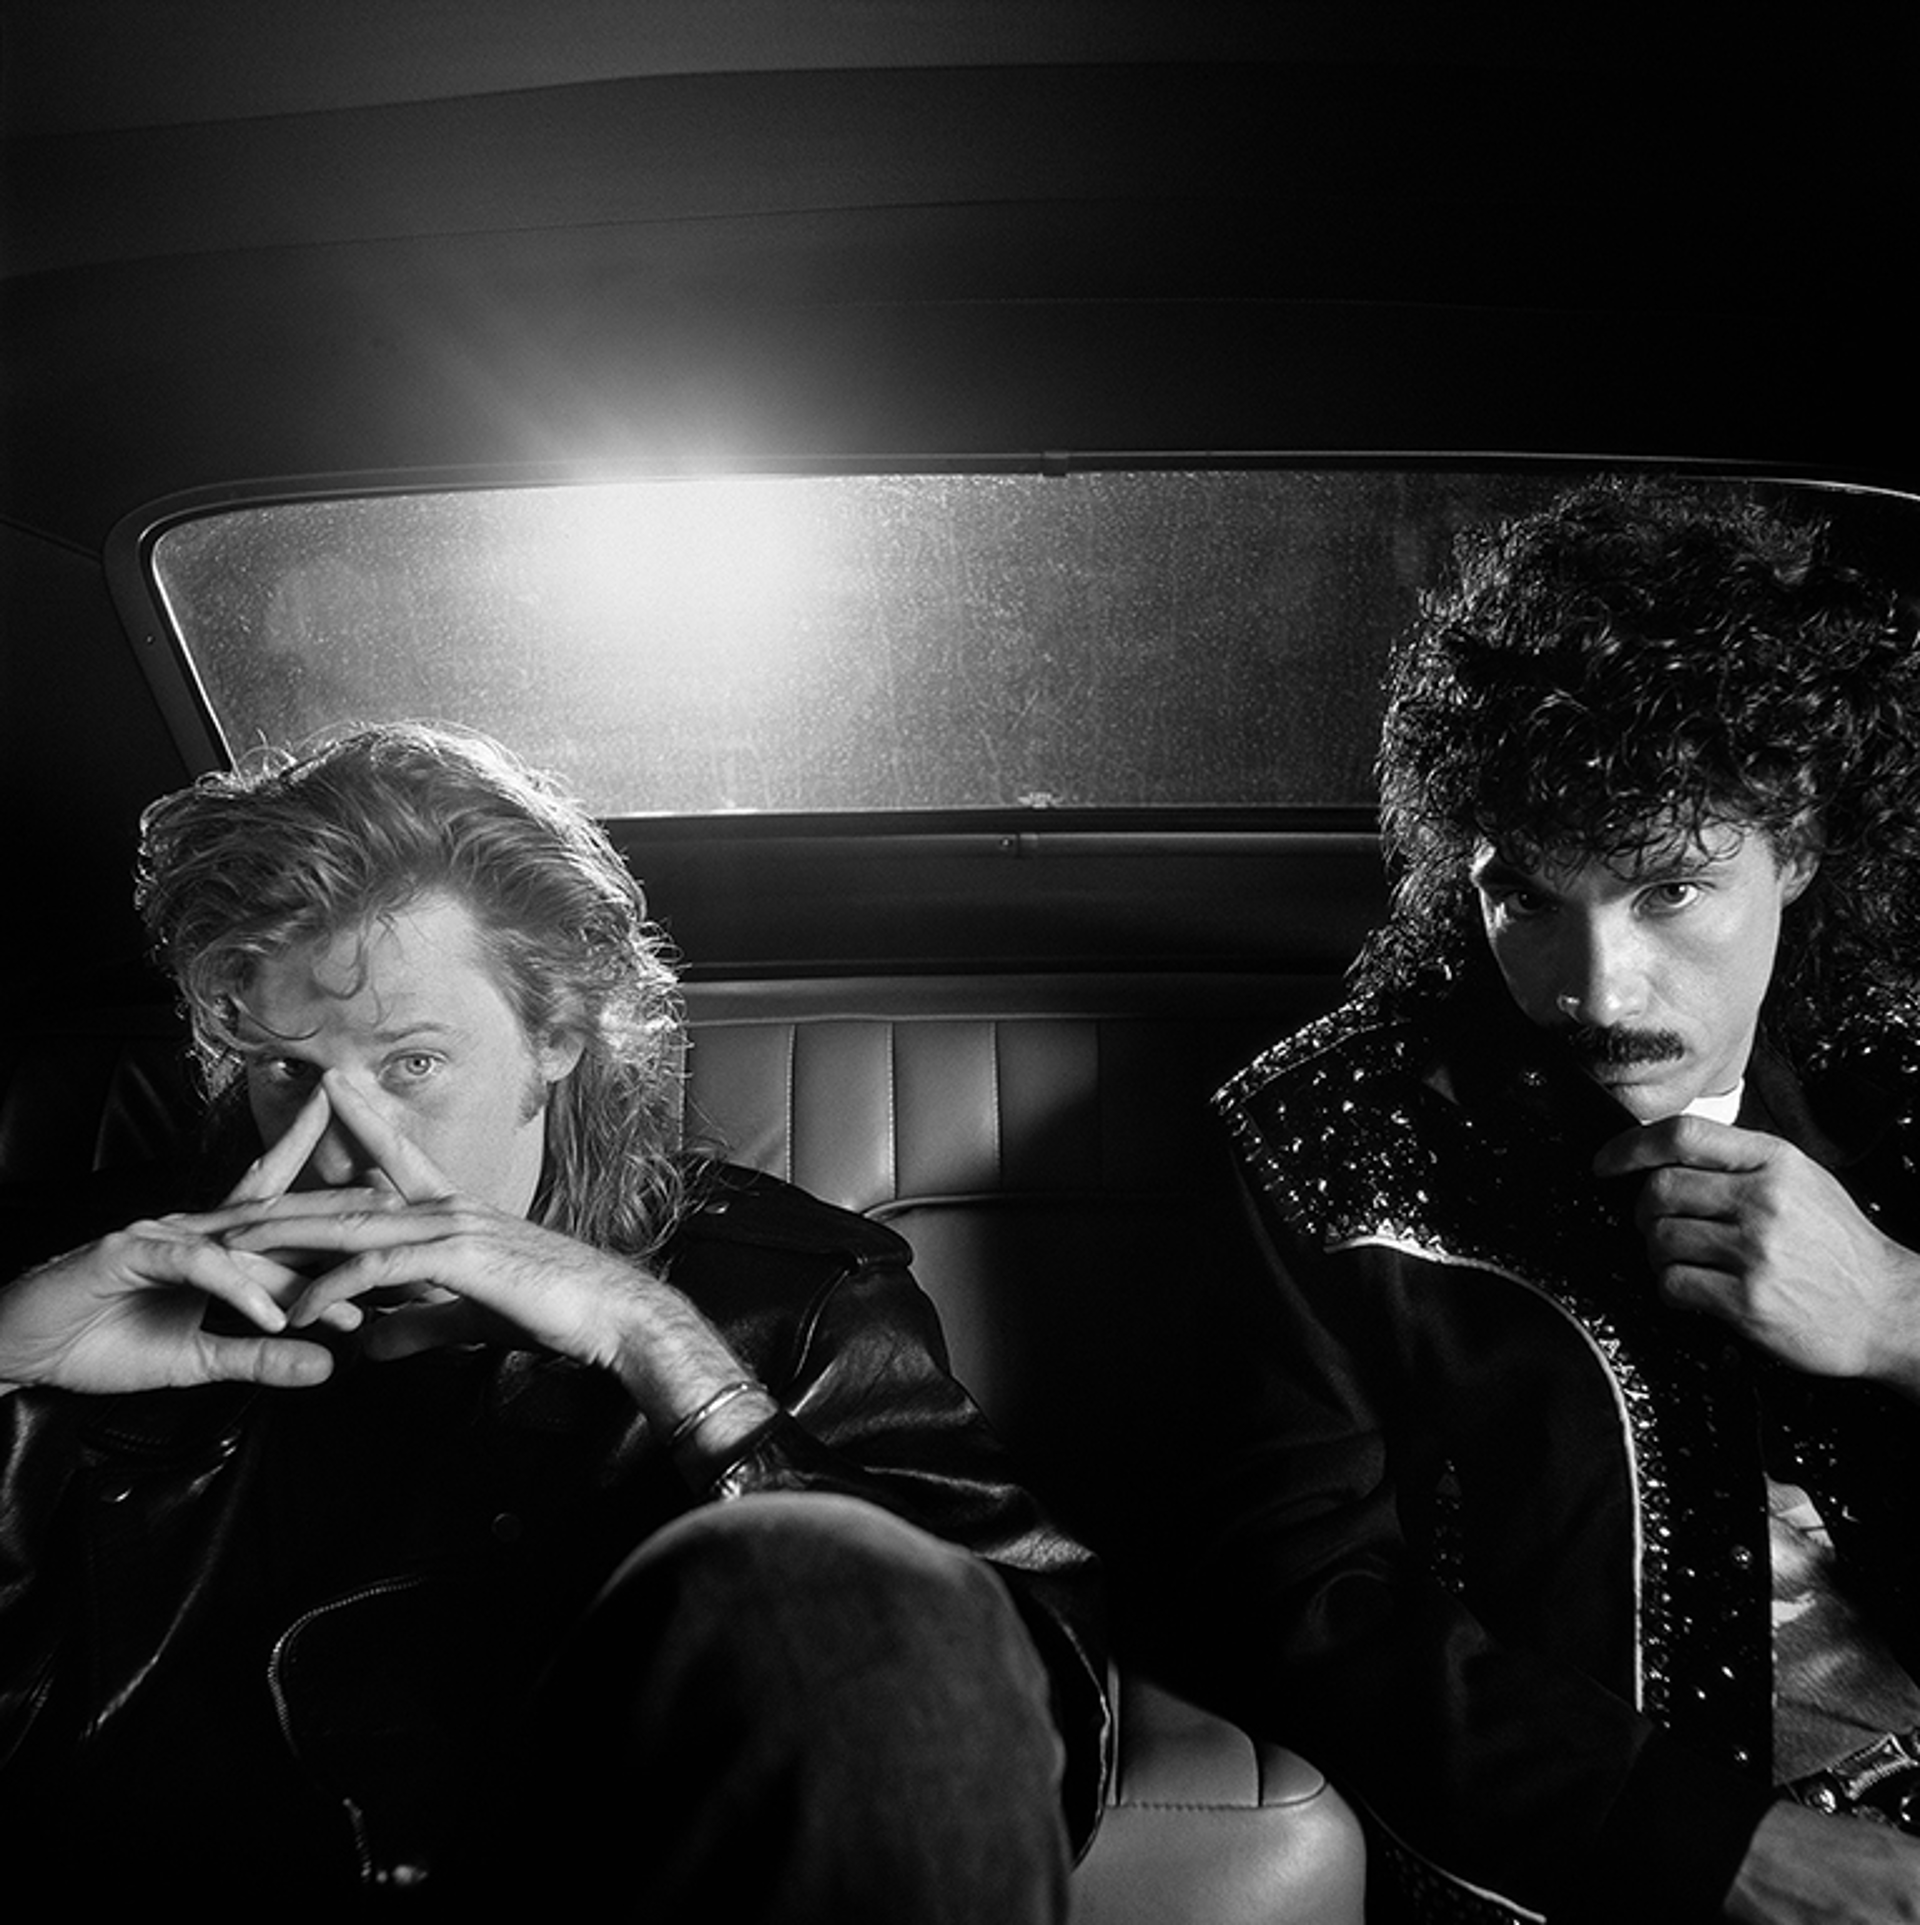 88094 Hall & Oates In The Back of A Car BW by Timothy White